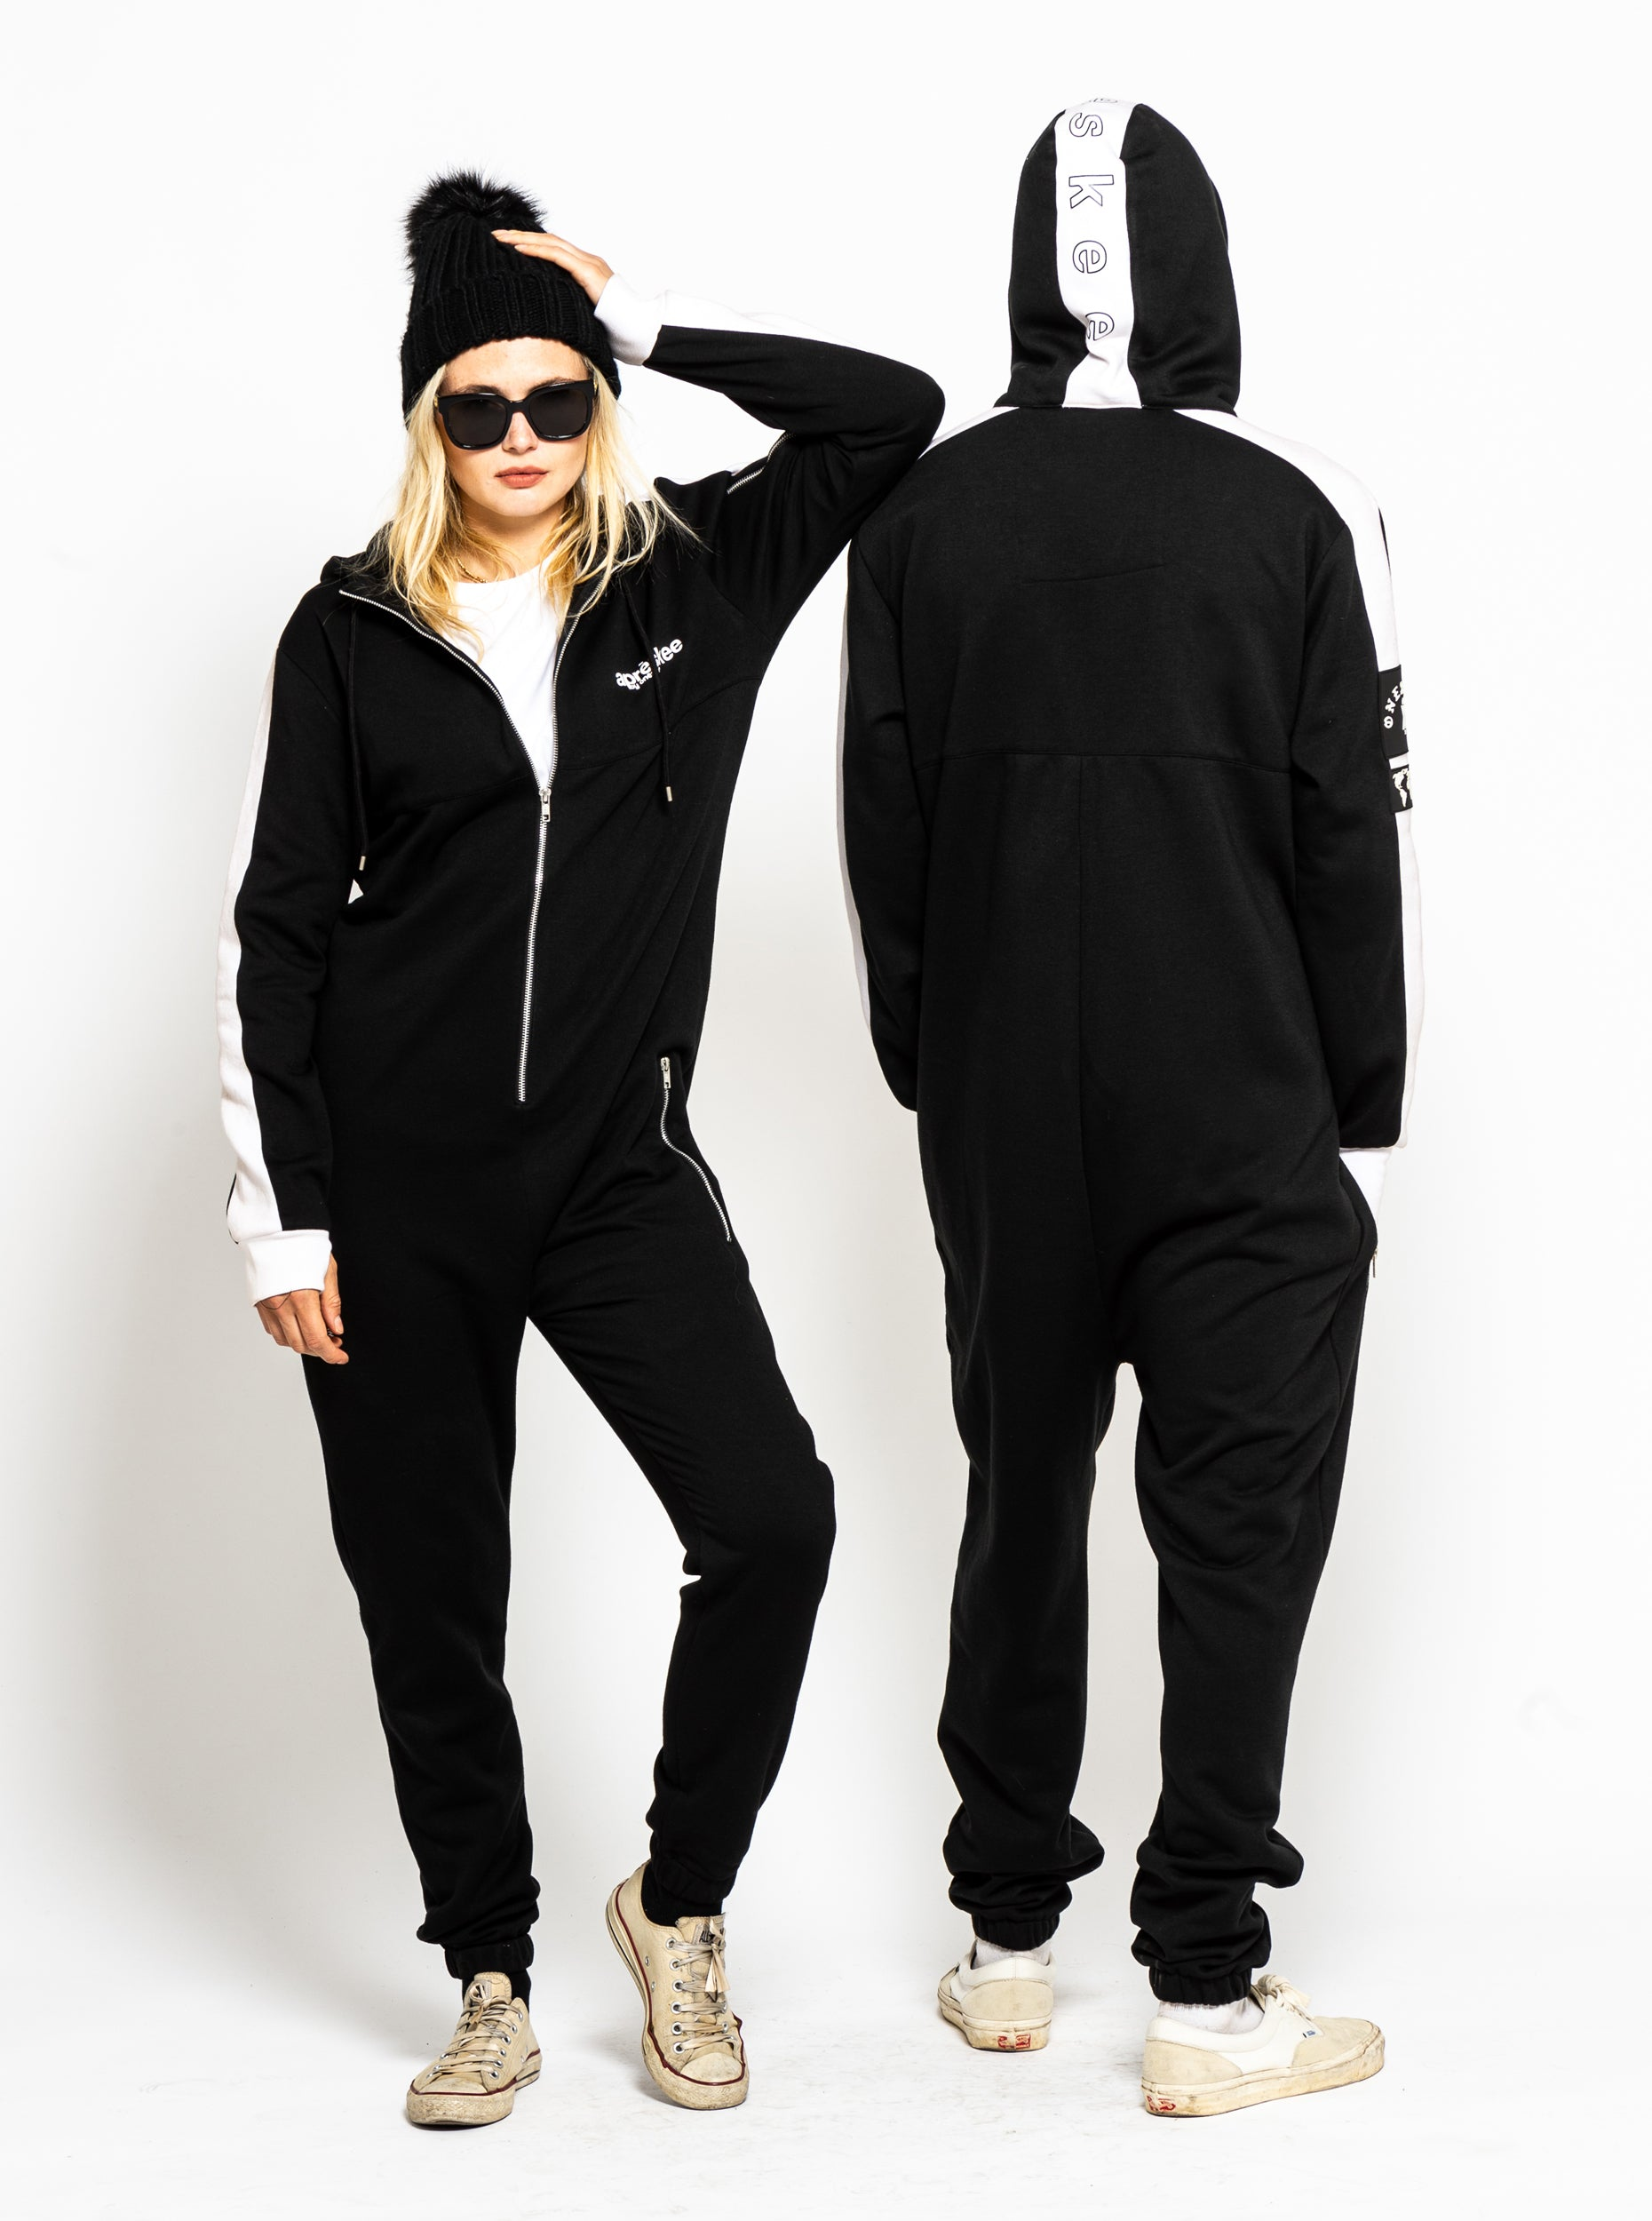 Apreskee One Piece Jumpsuit - Black image 3